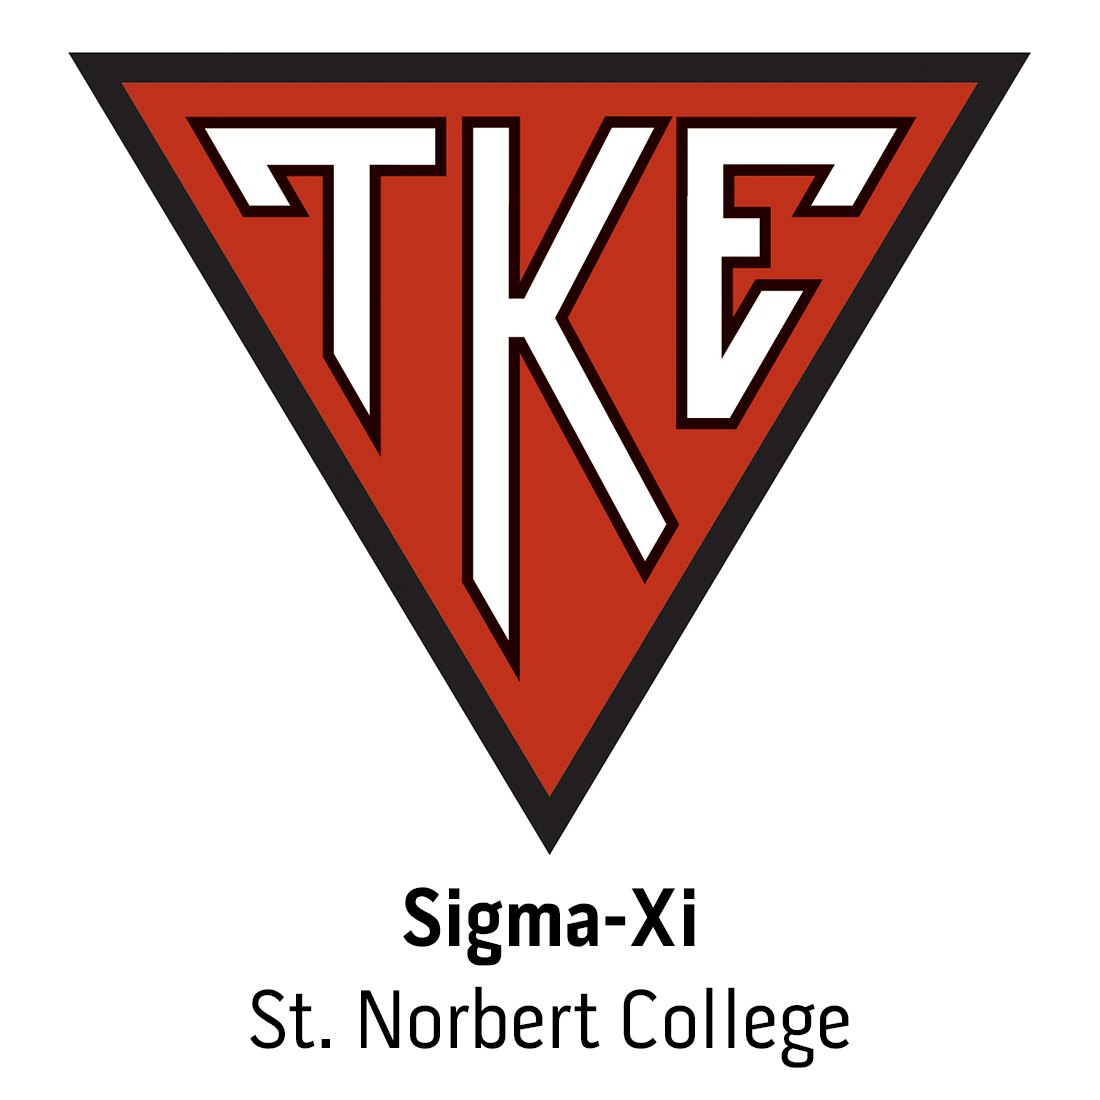 Sigma-Xi Chapter at St. Norbert College